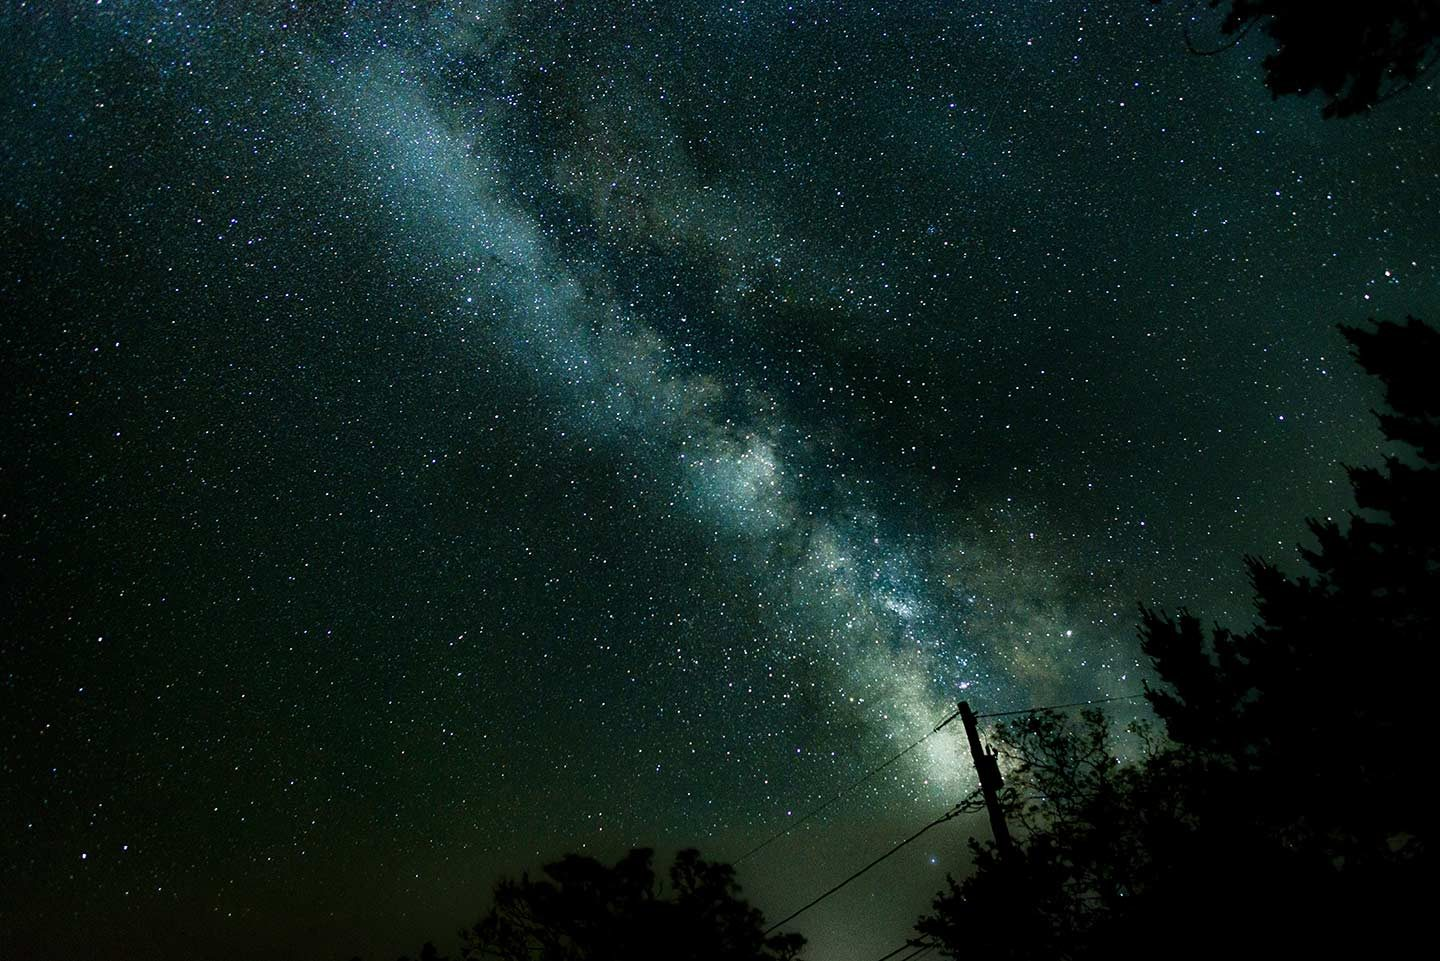 An image of the Milky Way fills the sky up with light. This is something the best camera for astrophotography will take very well.